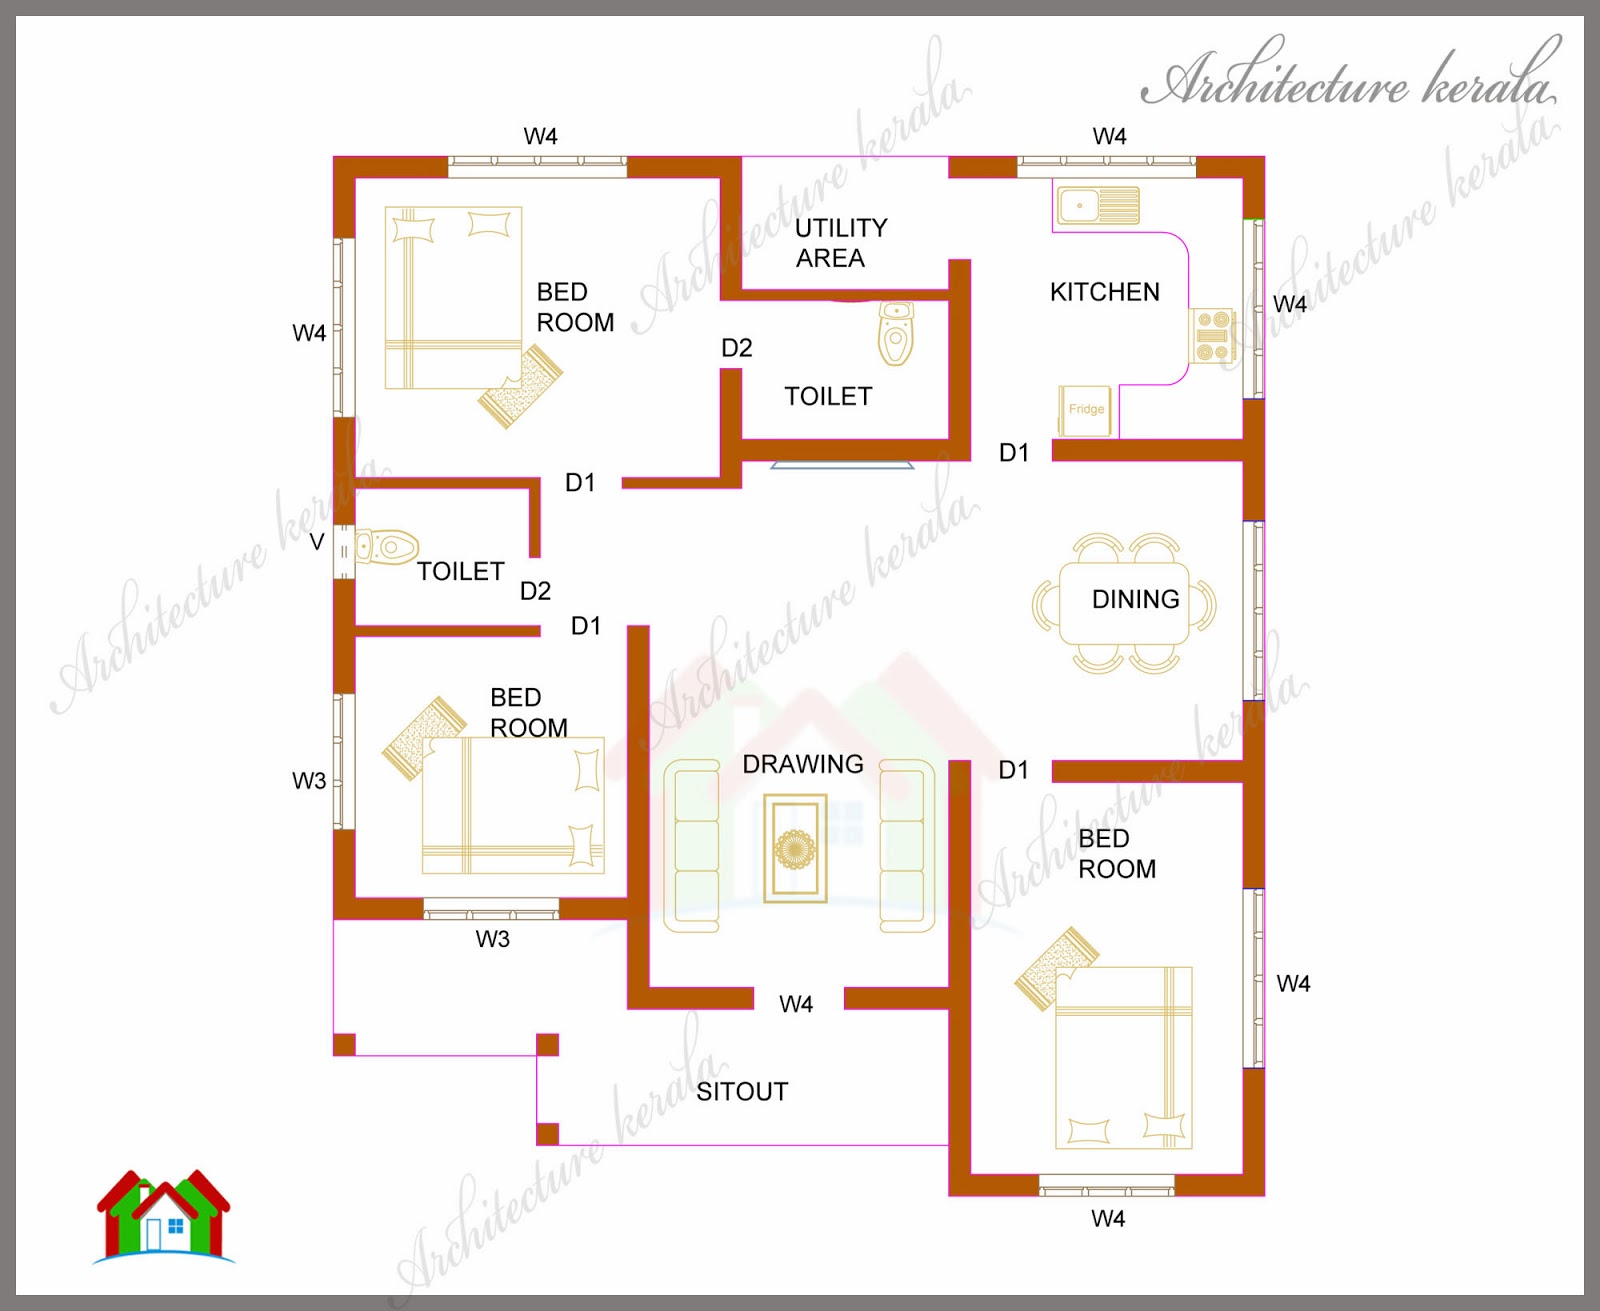 Incroyable 3 Bedroom House Plan In Kerala Www Redglobalmx Org